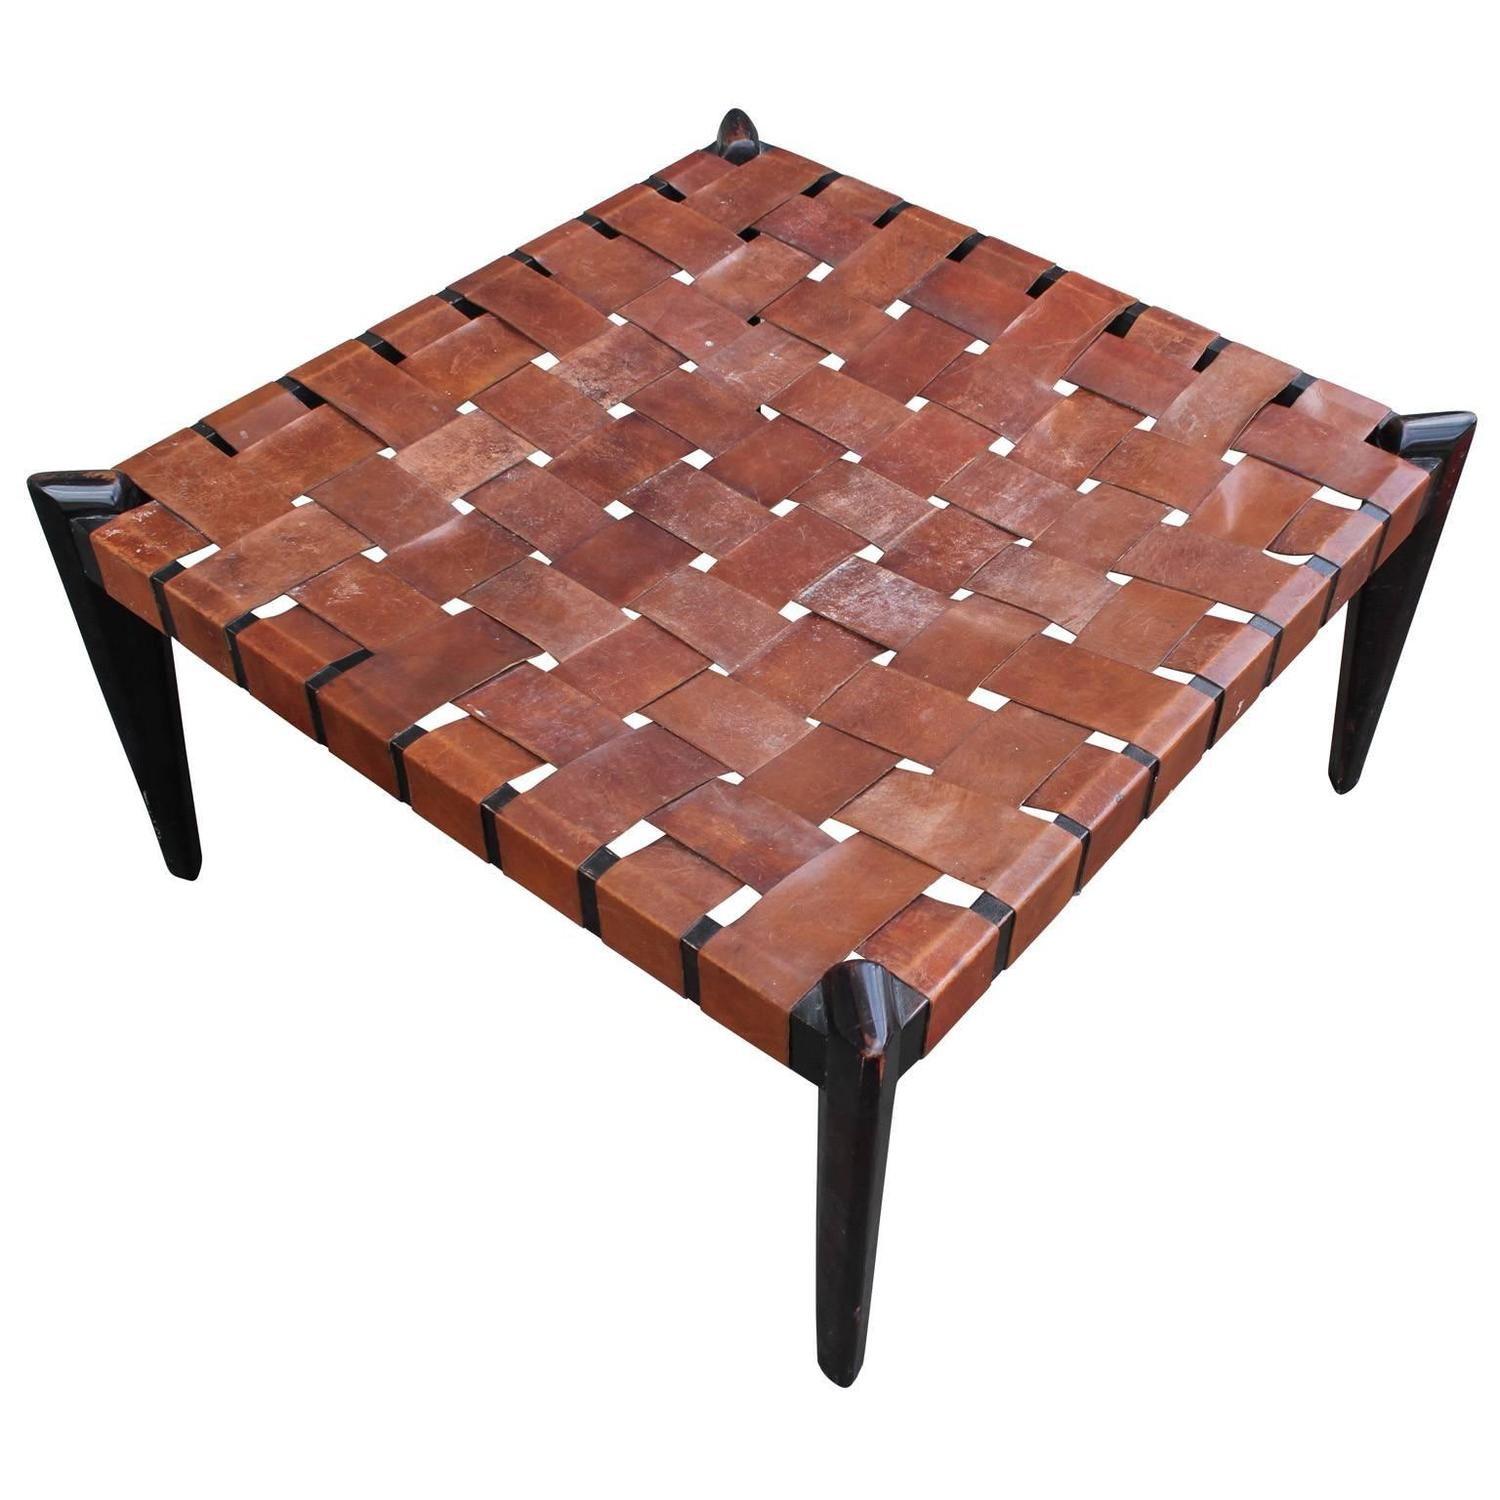 Fabulous Large Square Woven Leather Bench Or Ottoman At